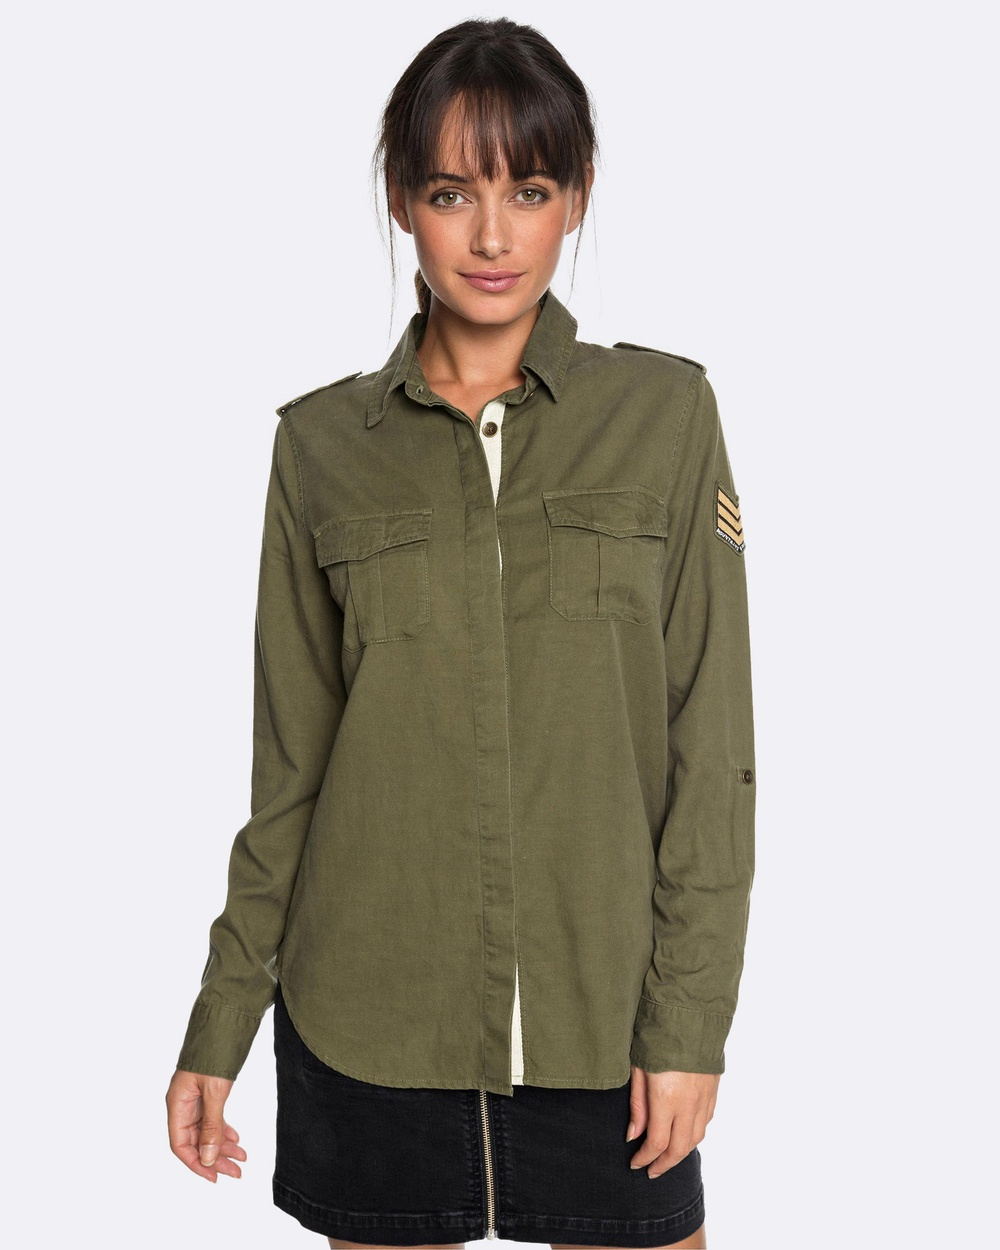 Photo of Roxy Roxy Womens Military Influence Long Sleeved Shirt Tops Burnt Olive Womens Military Influence Long Sleeved Shirt - Made with a thick Tencel® cotton and flax linen, cut with a classic, comfortable regular fit, and rounded out with a closed by hidden metal buttons on front tab. This long sleeve shirt for women joins the line-up in the ROXY autumn-winter apparel collection.58% Tencel, 27% Cotton, 15% Flax LinenFabric: Thick TENCEL® cotton and flax linen [180 g/m2]Fit: